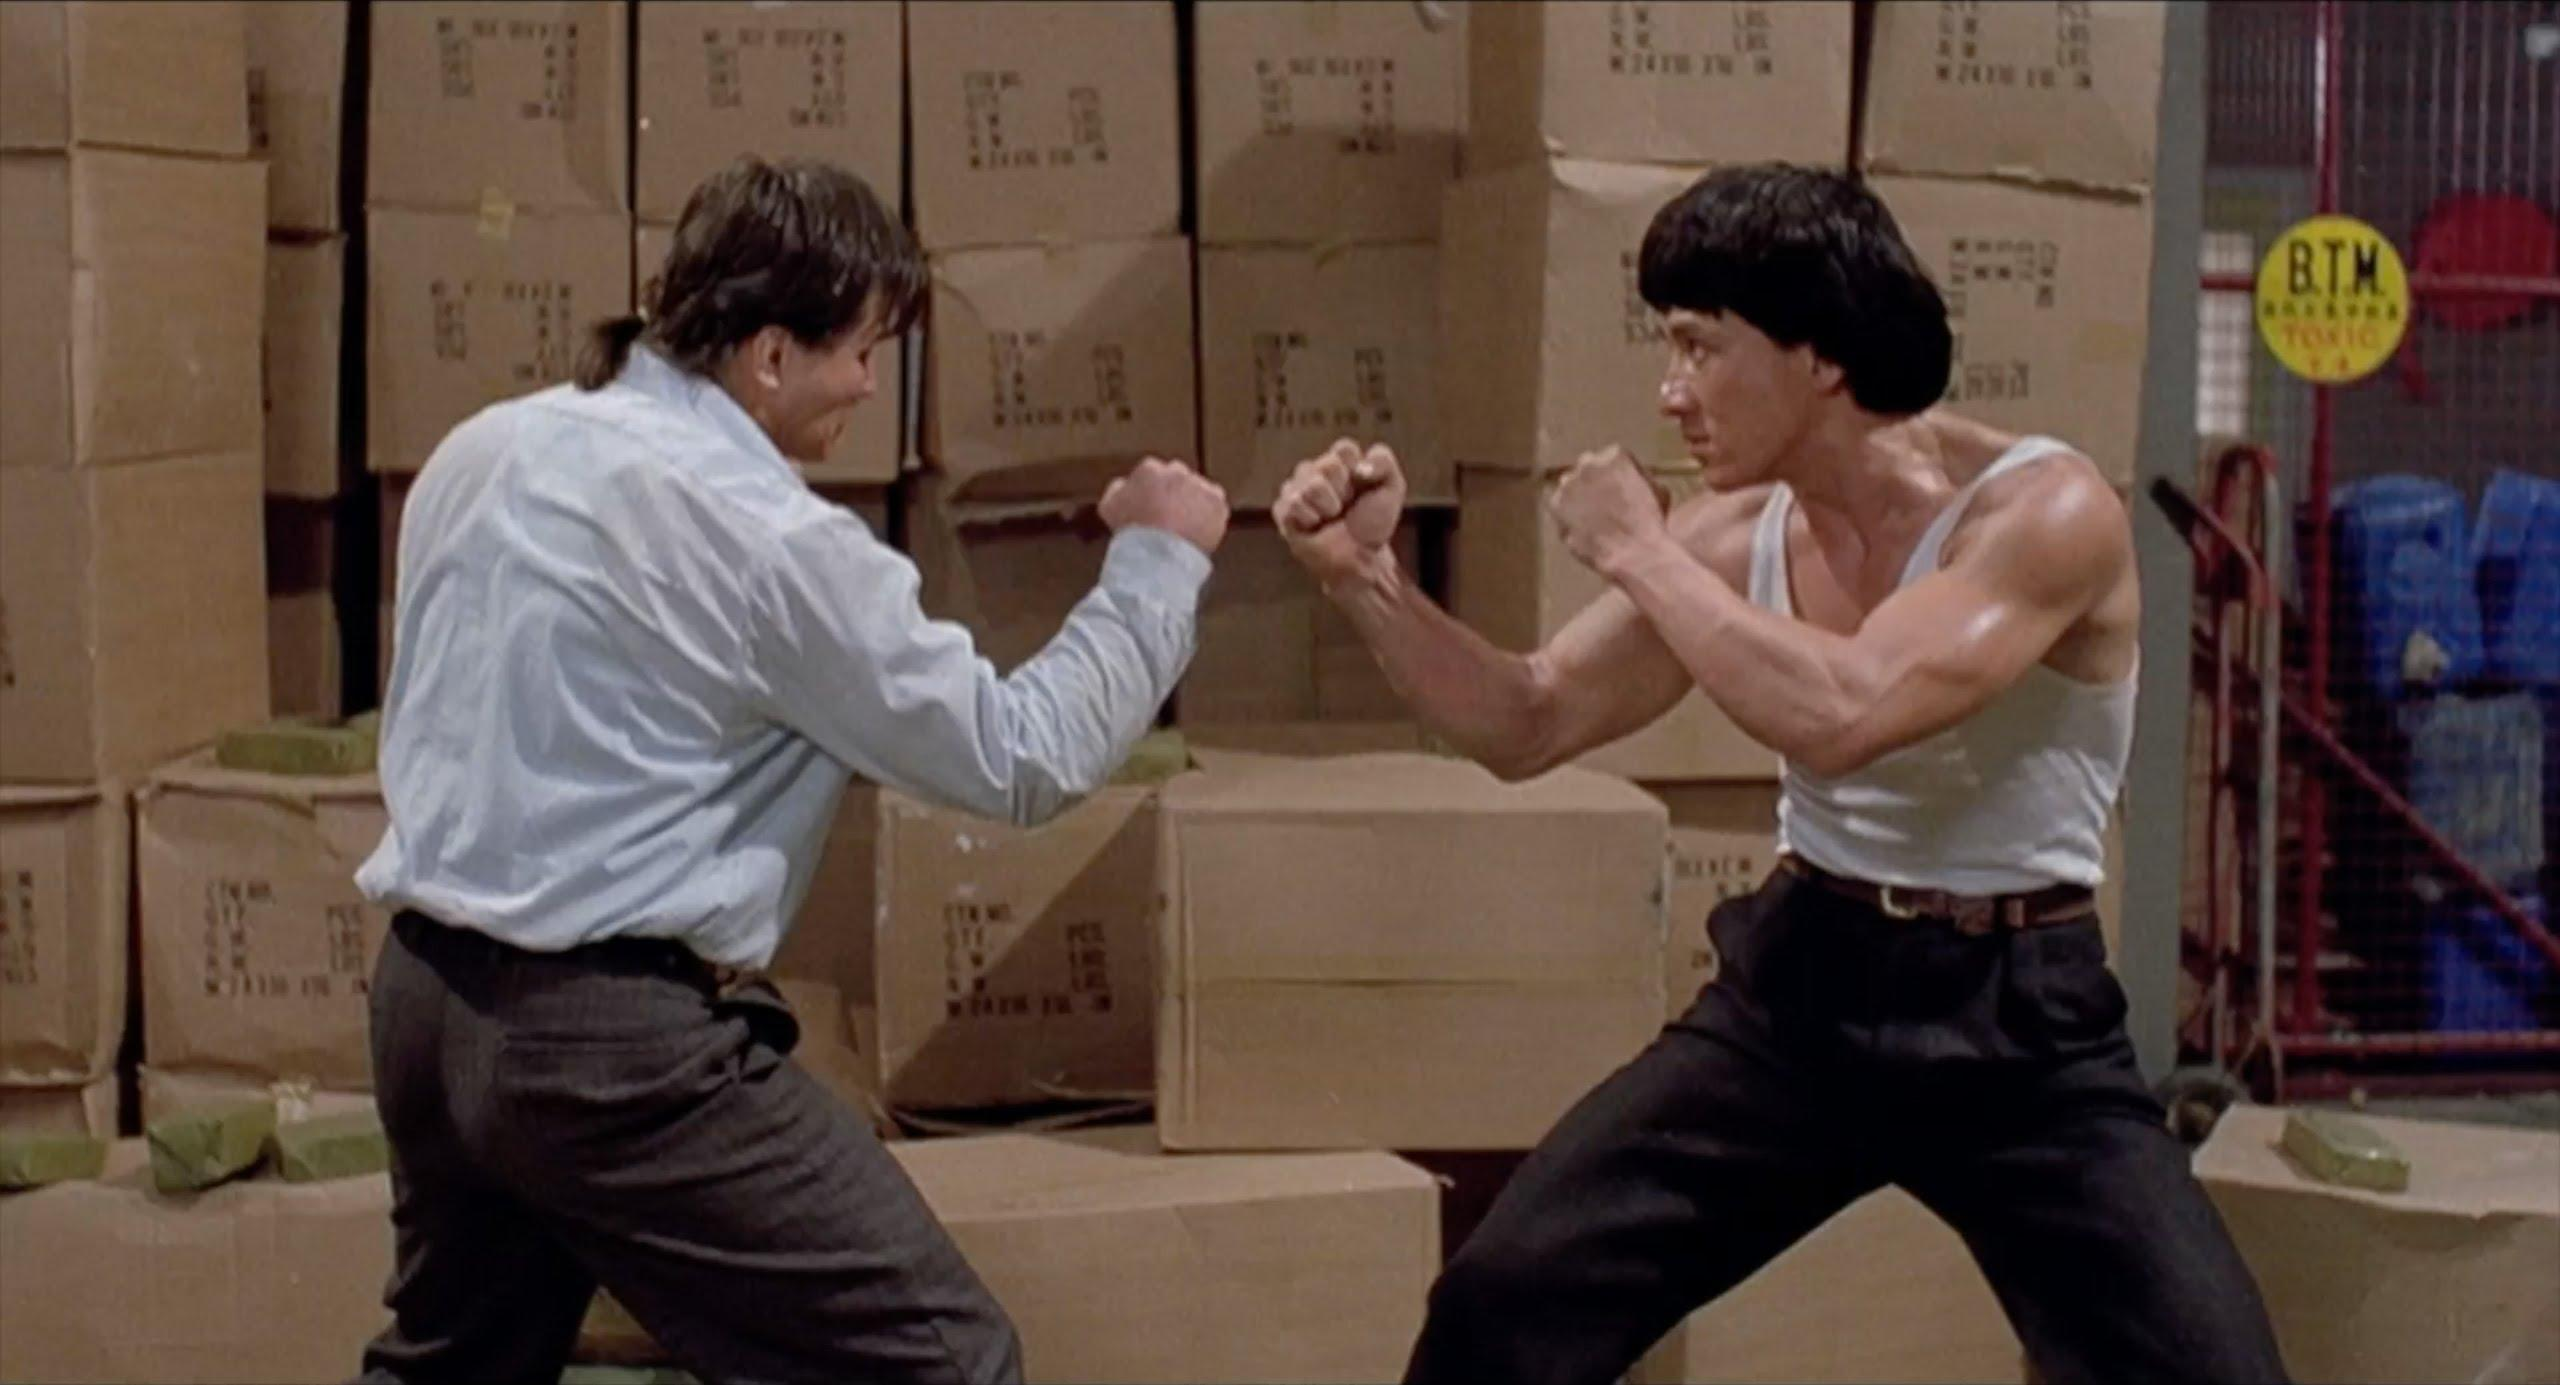 Daylightpeople.com Jackie Chan - How to Do Action Comedy